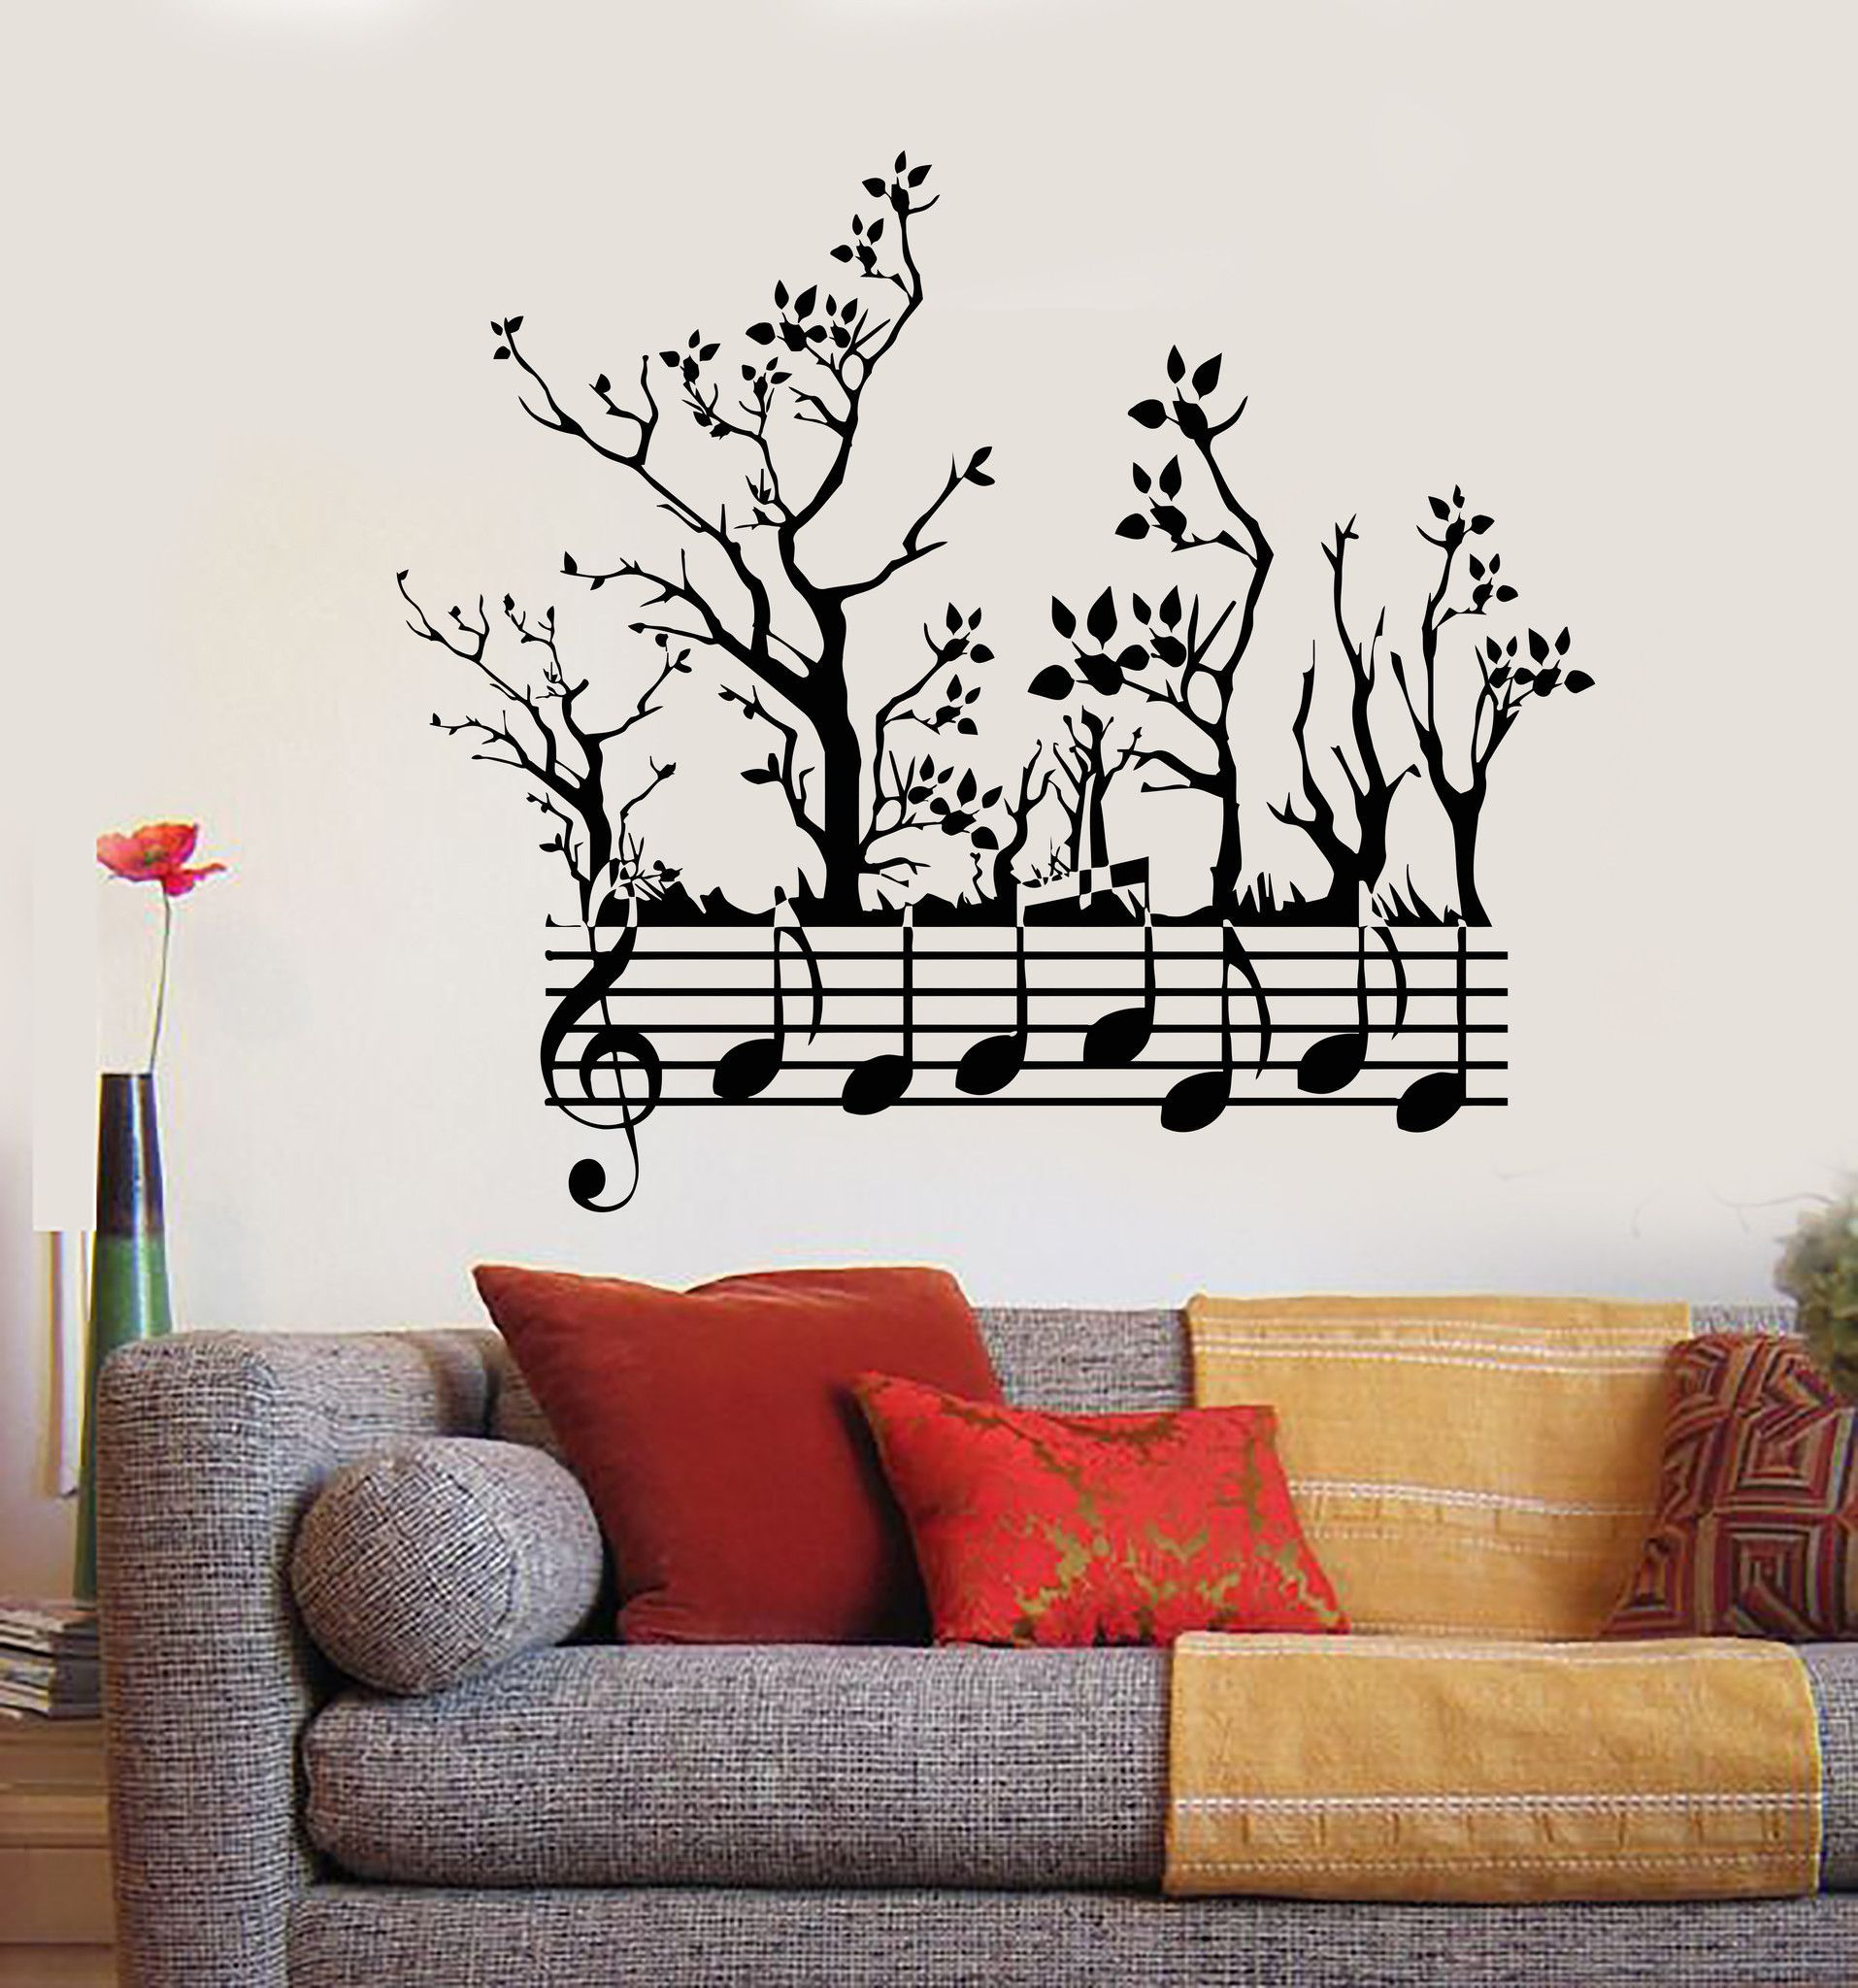 Vinyl wall decal forest tree nature notes music musician branches vinyl wall decal forest tree nature notes music musician branches stickers 745ig amipublicfo Gallery